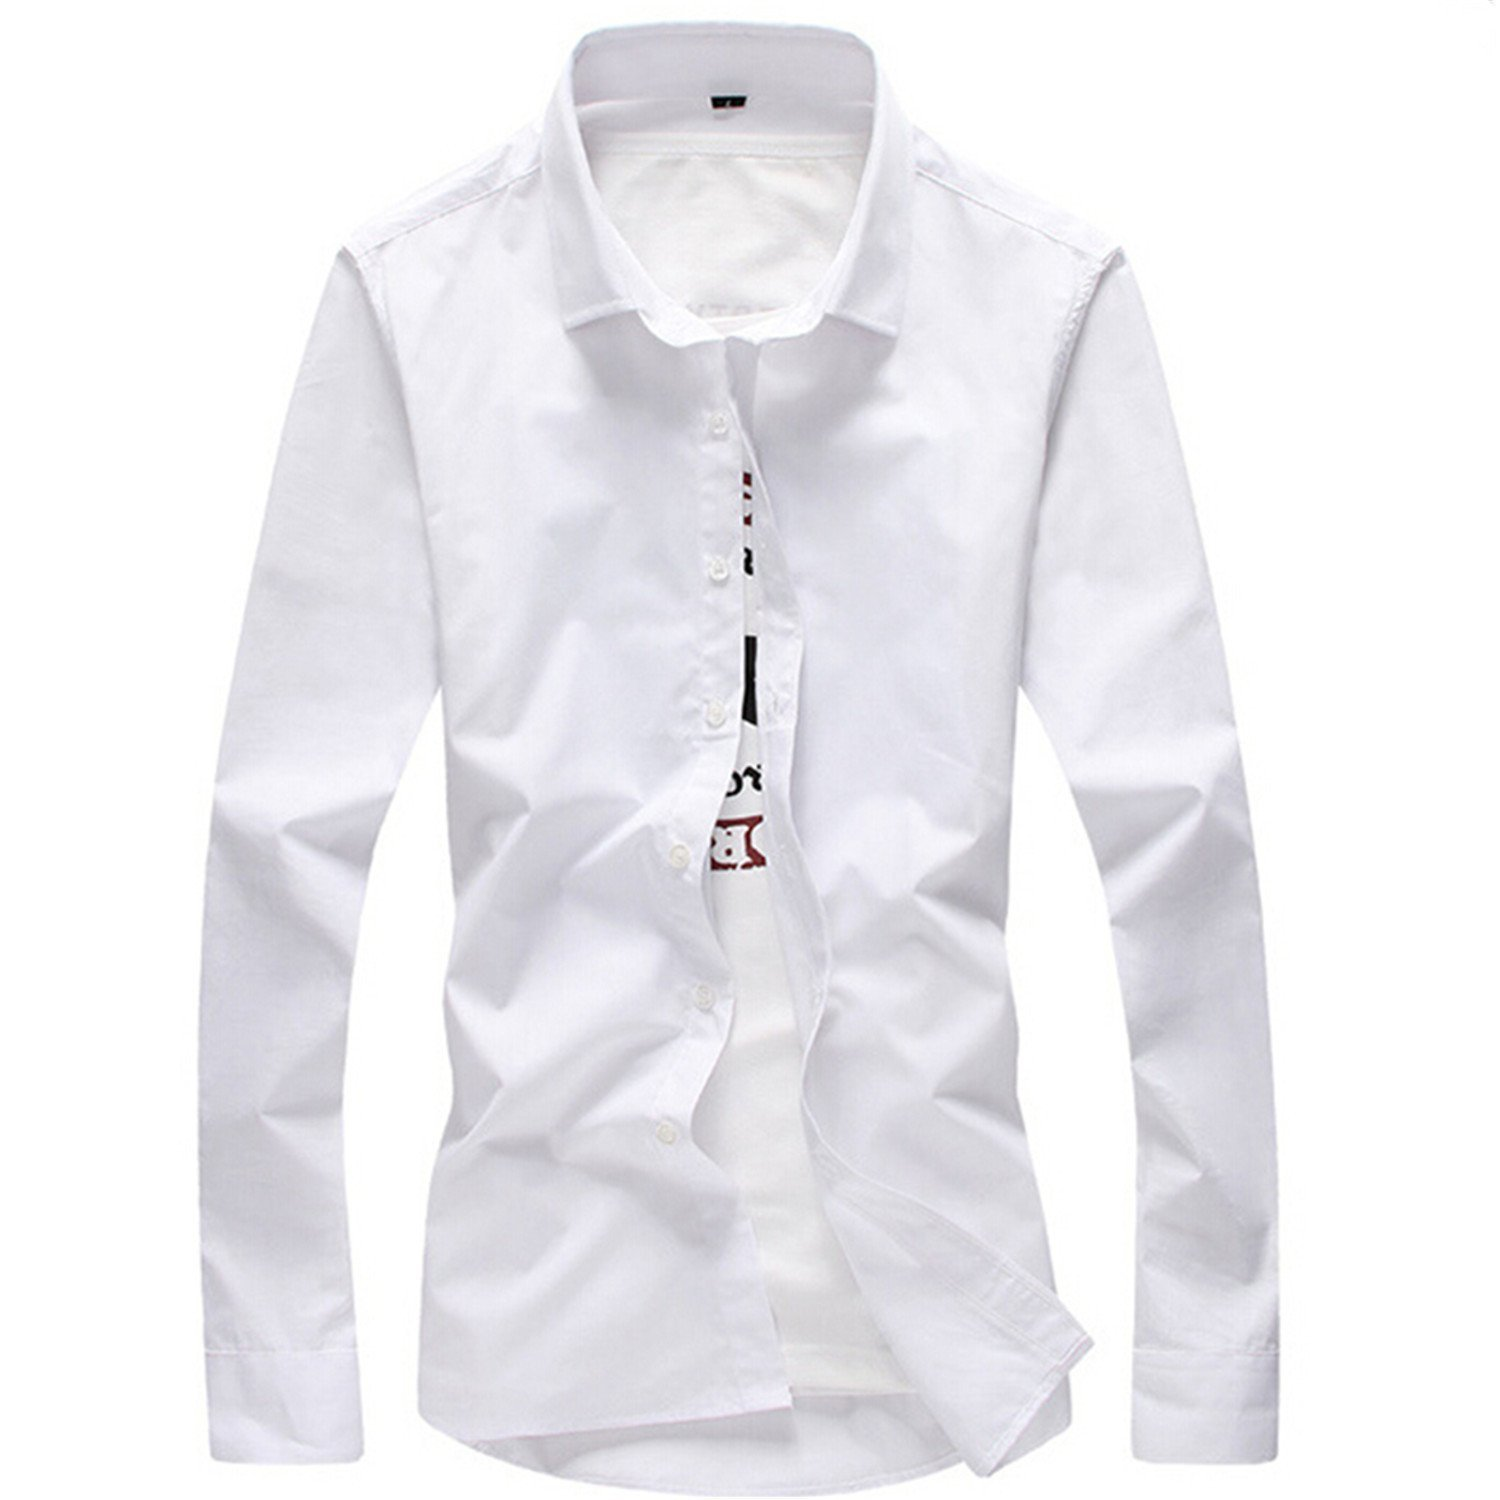 Cheap Mens White Formal Shirts Find Mens White Formal Shirts Deals